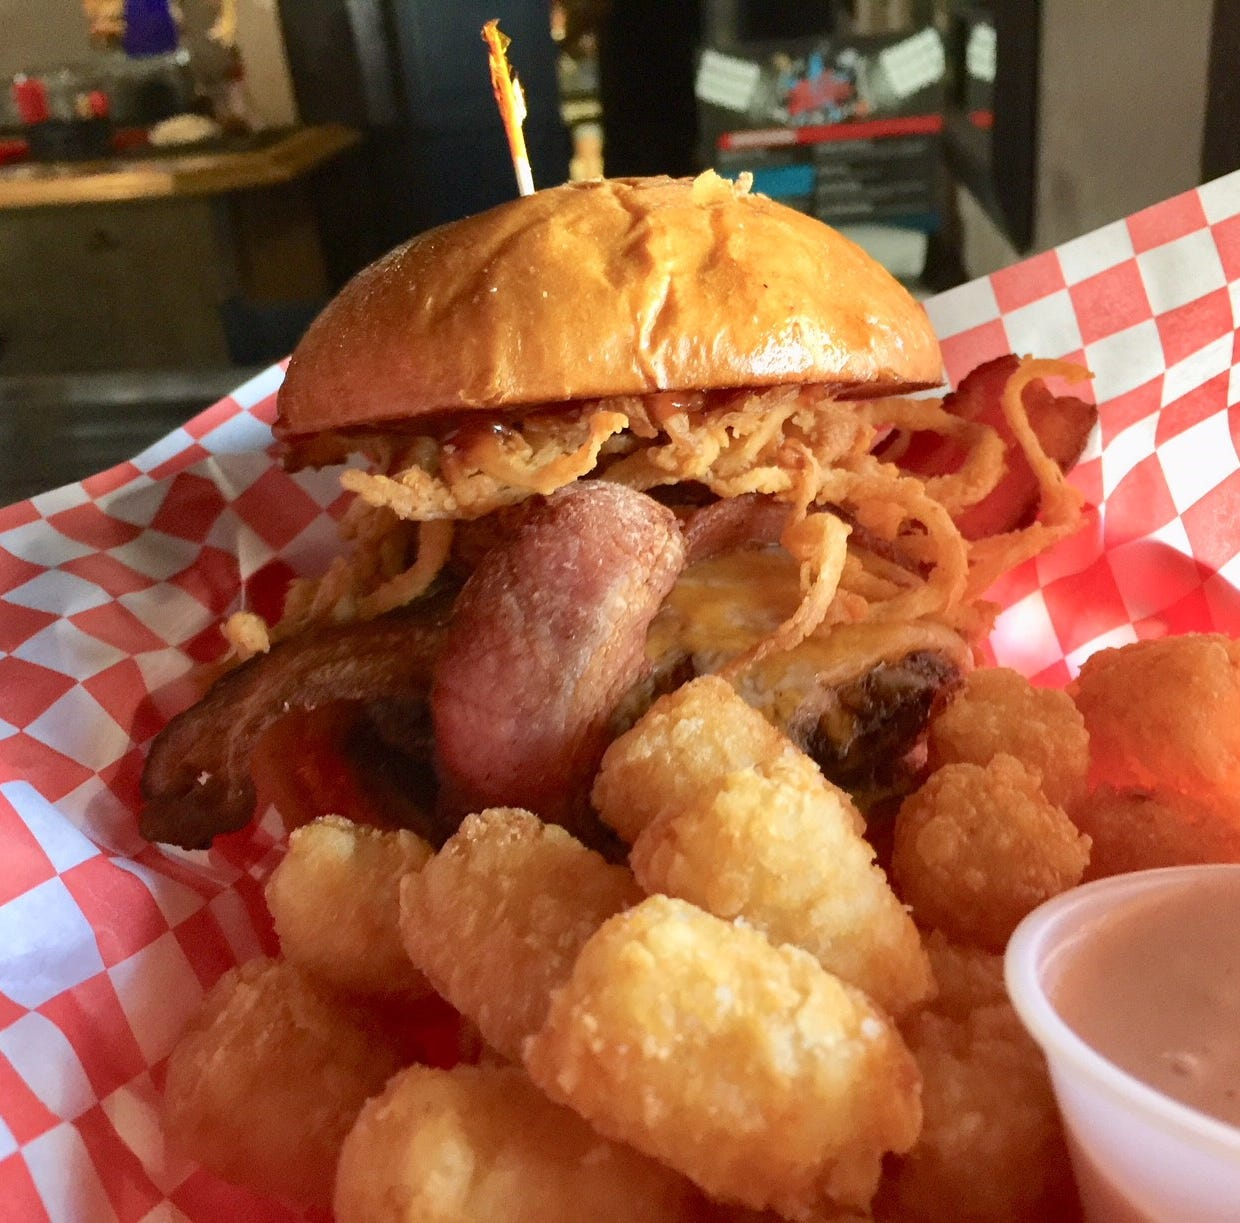 Dining Out: All Stars Sports Bar scores big with sports fans, comfort food